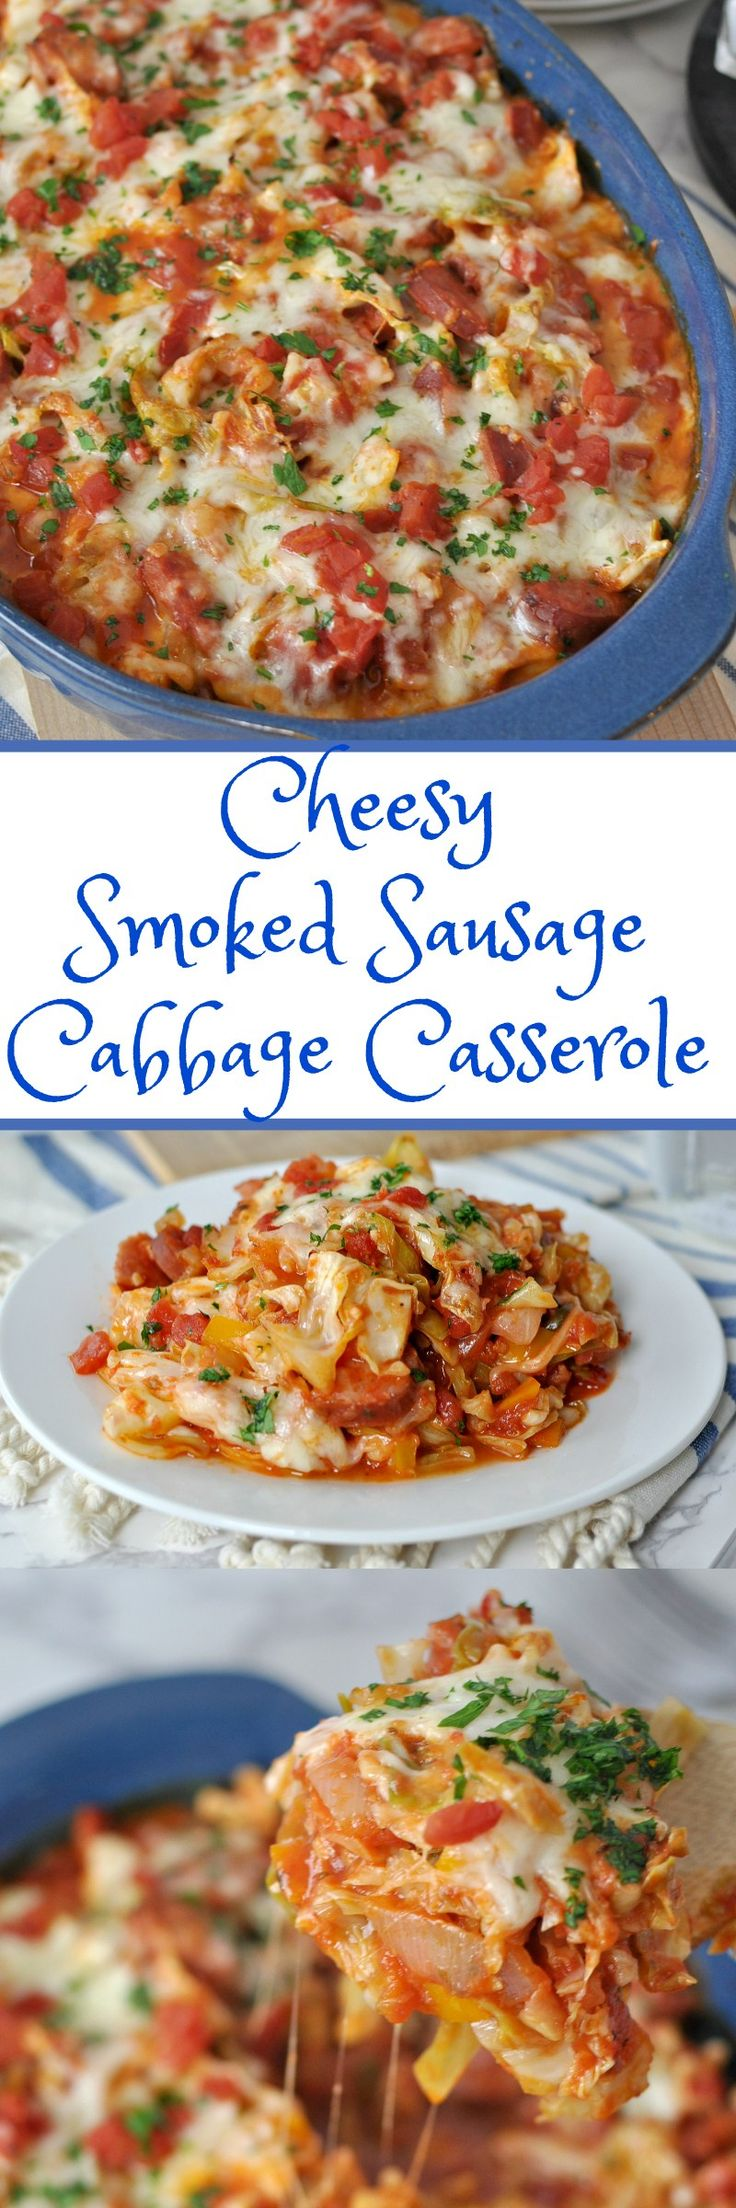 Cheesy Smoked Sausage and Cabbage Casserole - Low Carb, Gluten Free | Peace Love and Low Carb